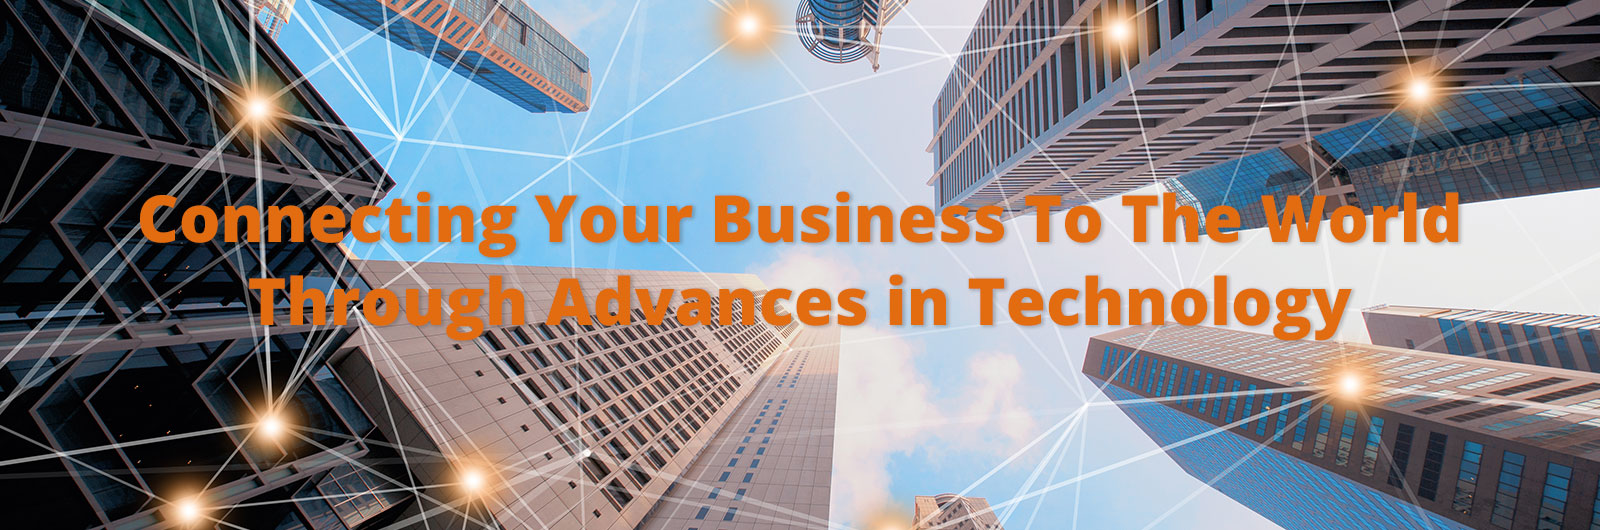 text on photo of skyscrapers: connecting your business to the world through advances in technology